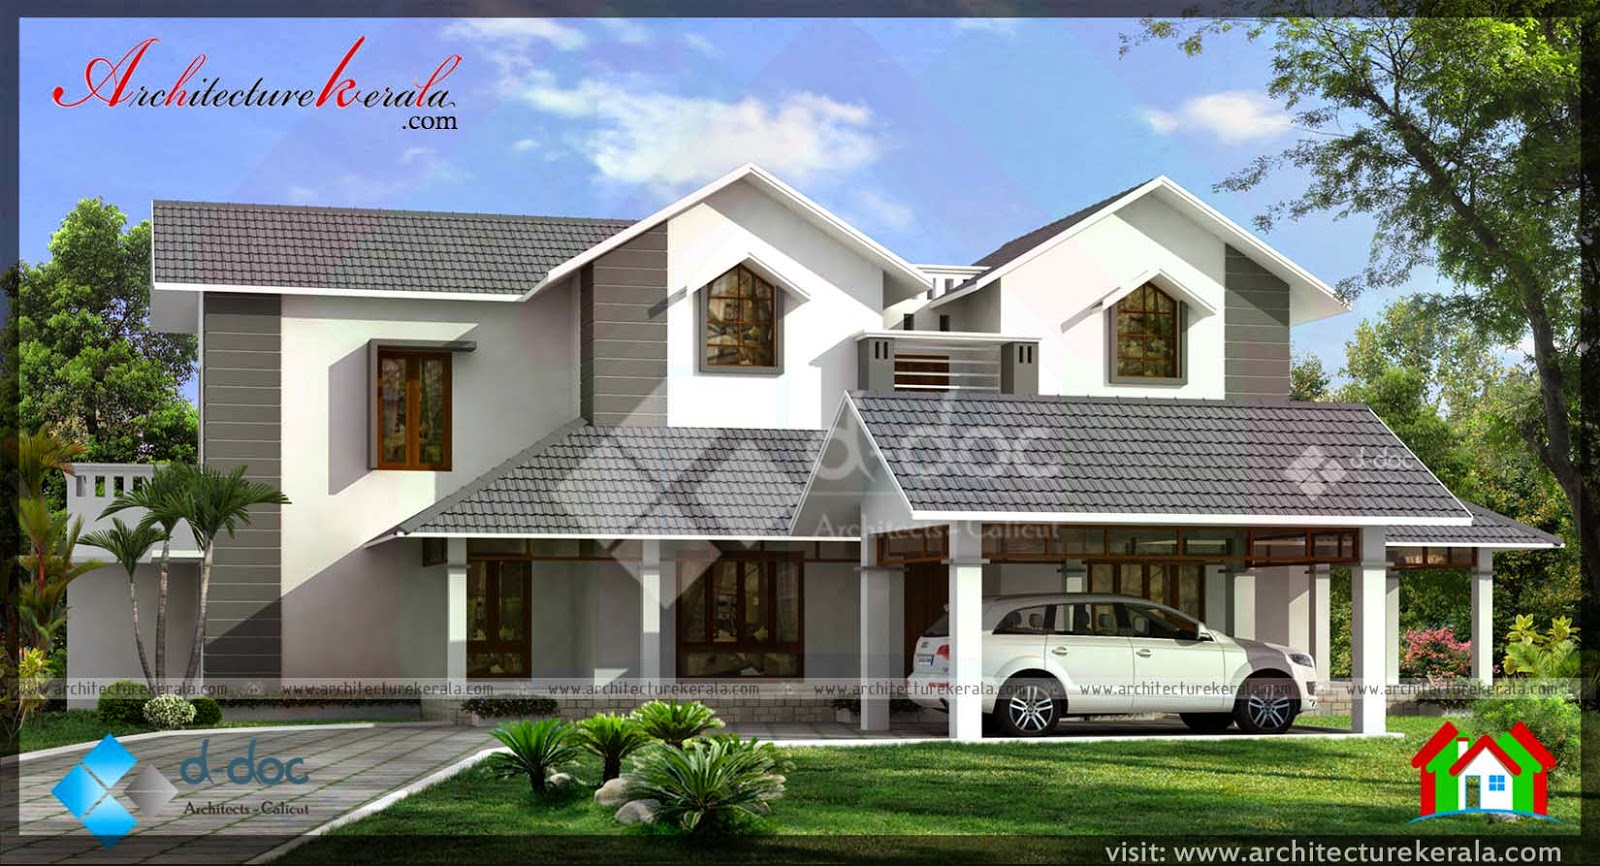 Contemporary house in 3000 sq ft architecture kerala for 3000 sq ft building